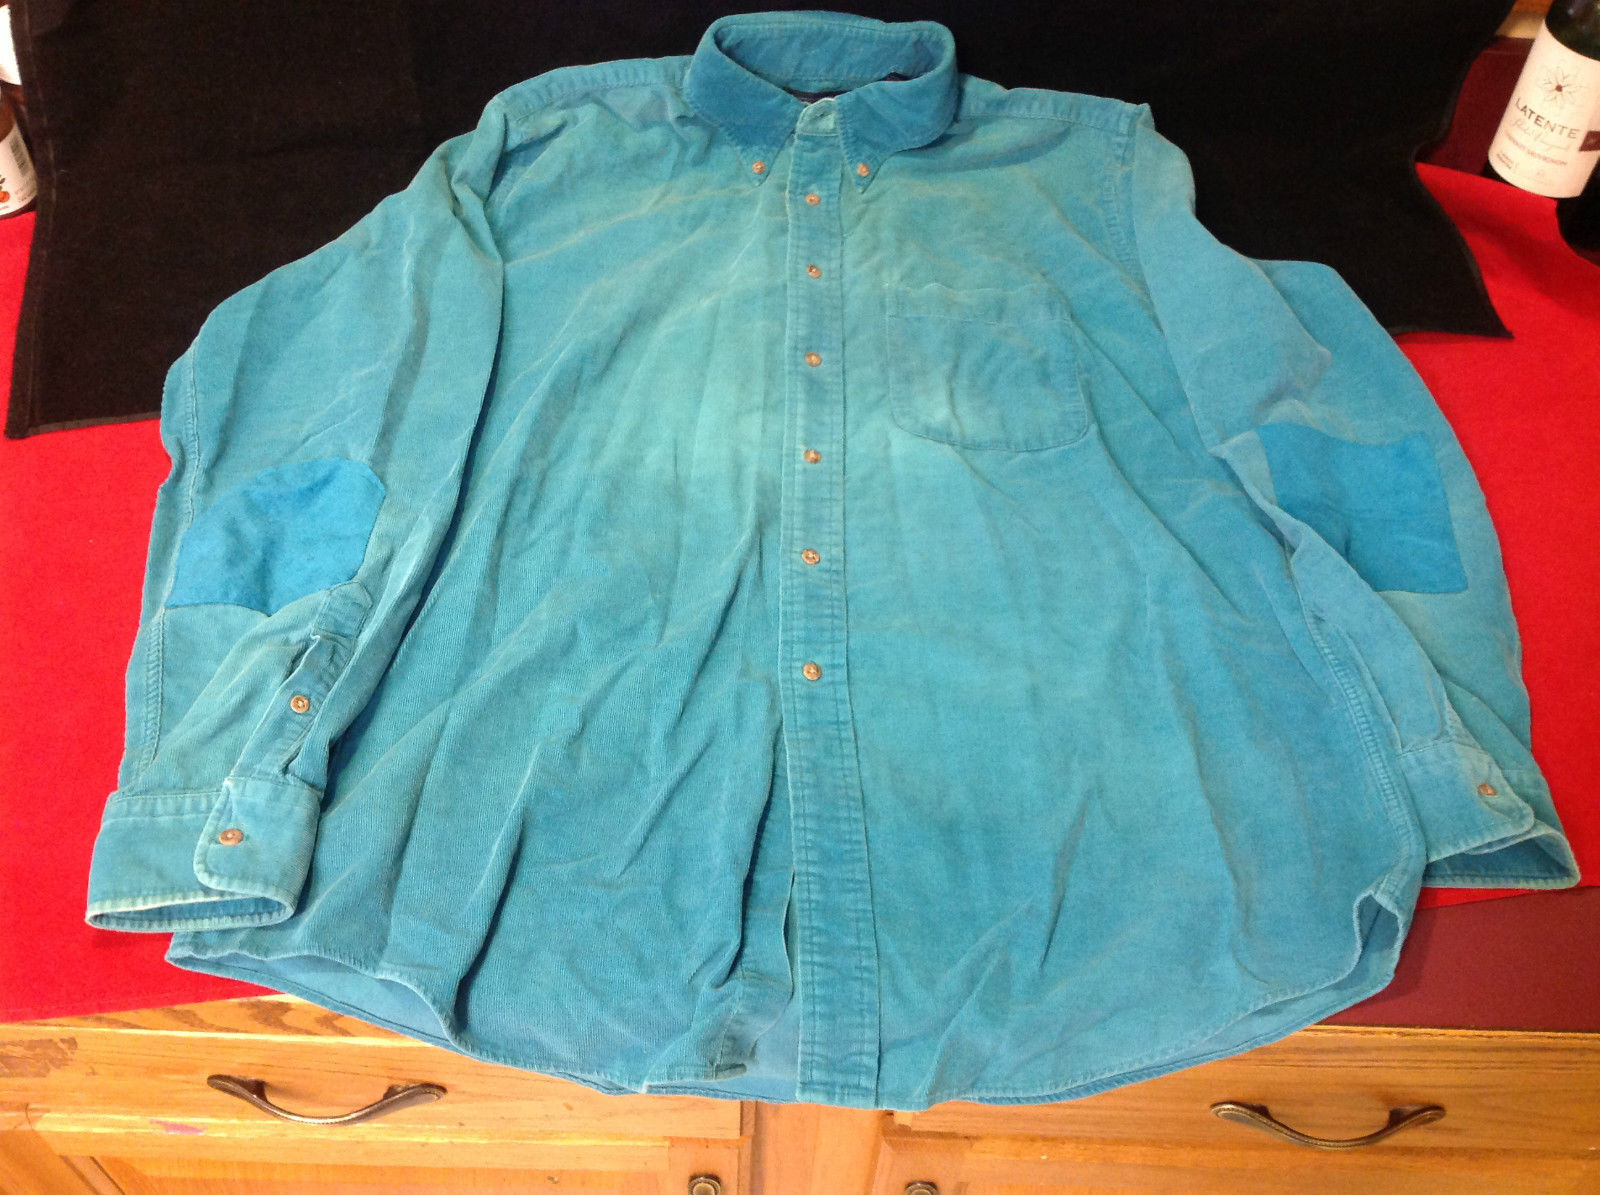 Mens Blue Casual Shirt Lands' End Patched Elbows Very Good Condition Size Large